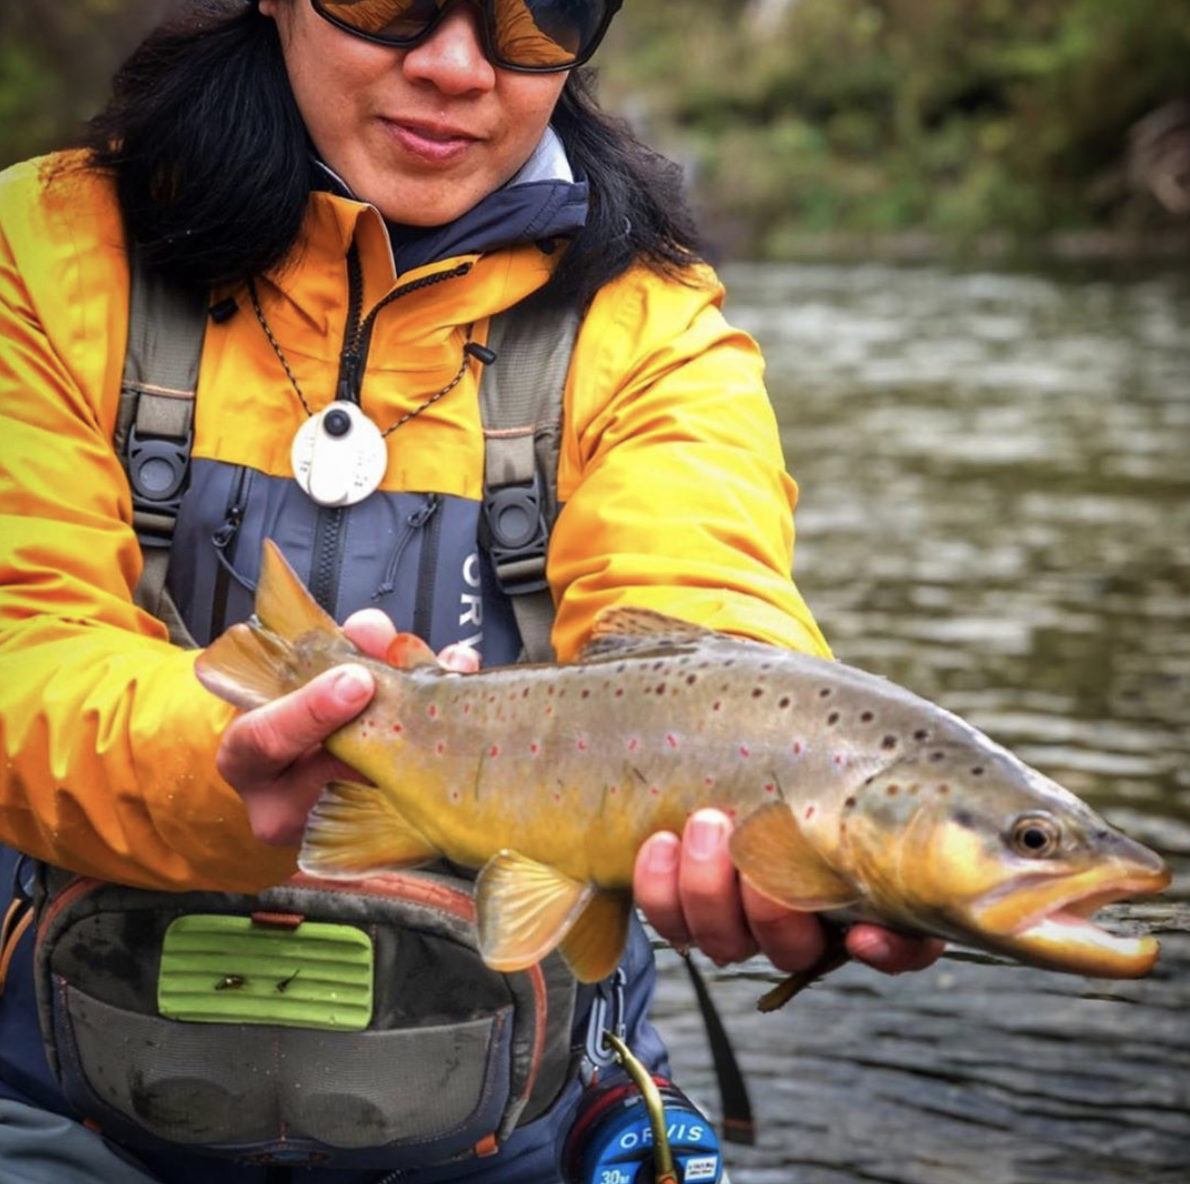 A woman in an orange jacket and waders holding a trout